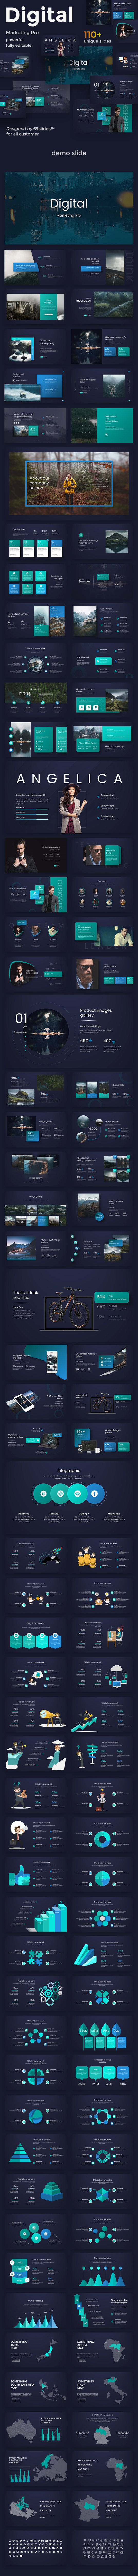 Digital Marketing Pro Design Powerpoint Template - Creative PowerPoint Templates